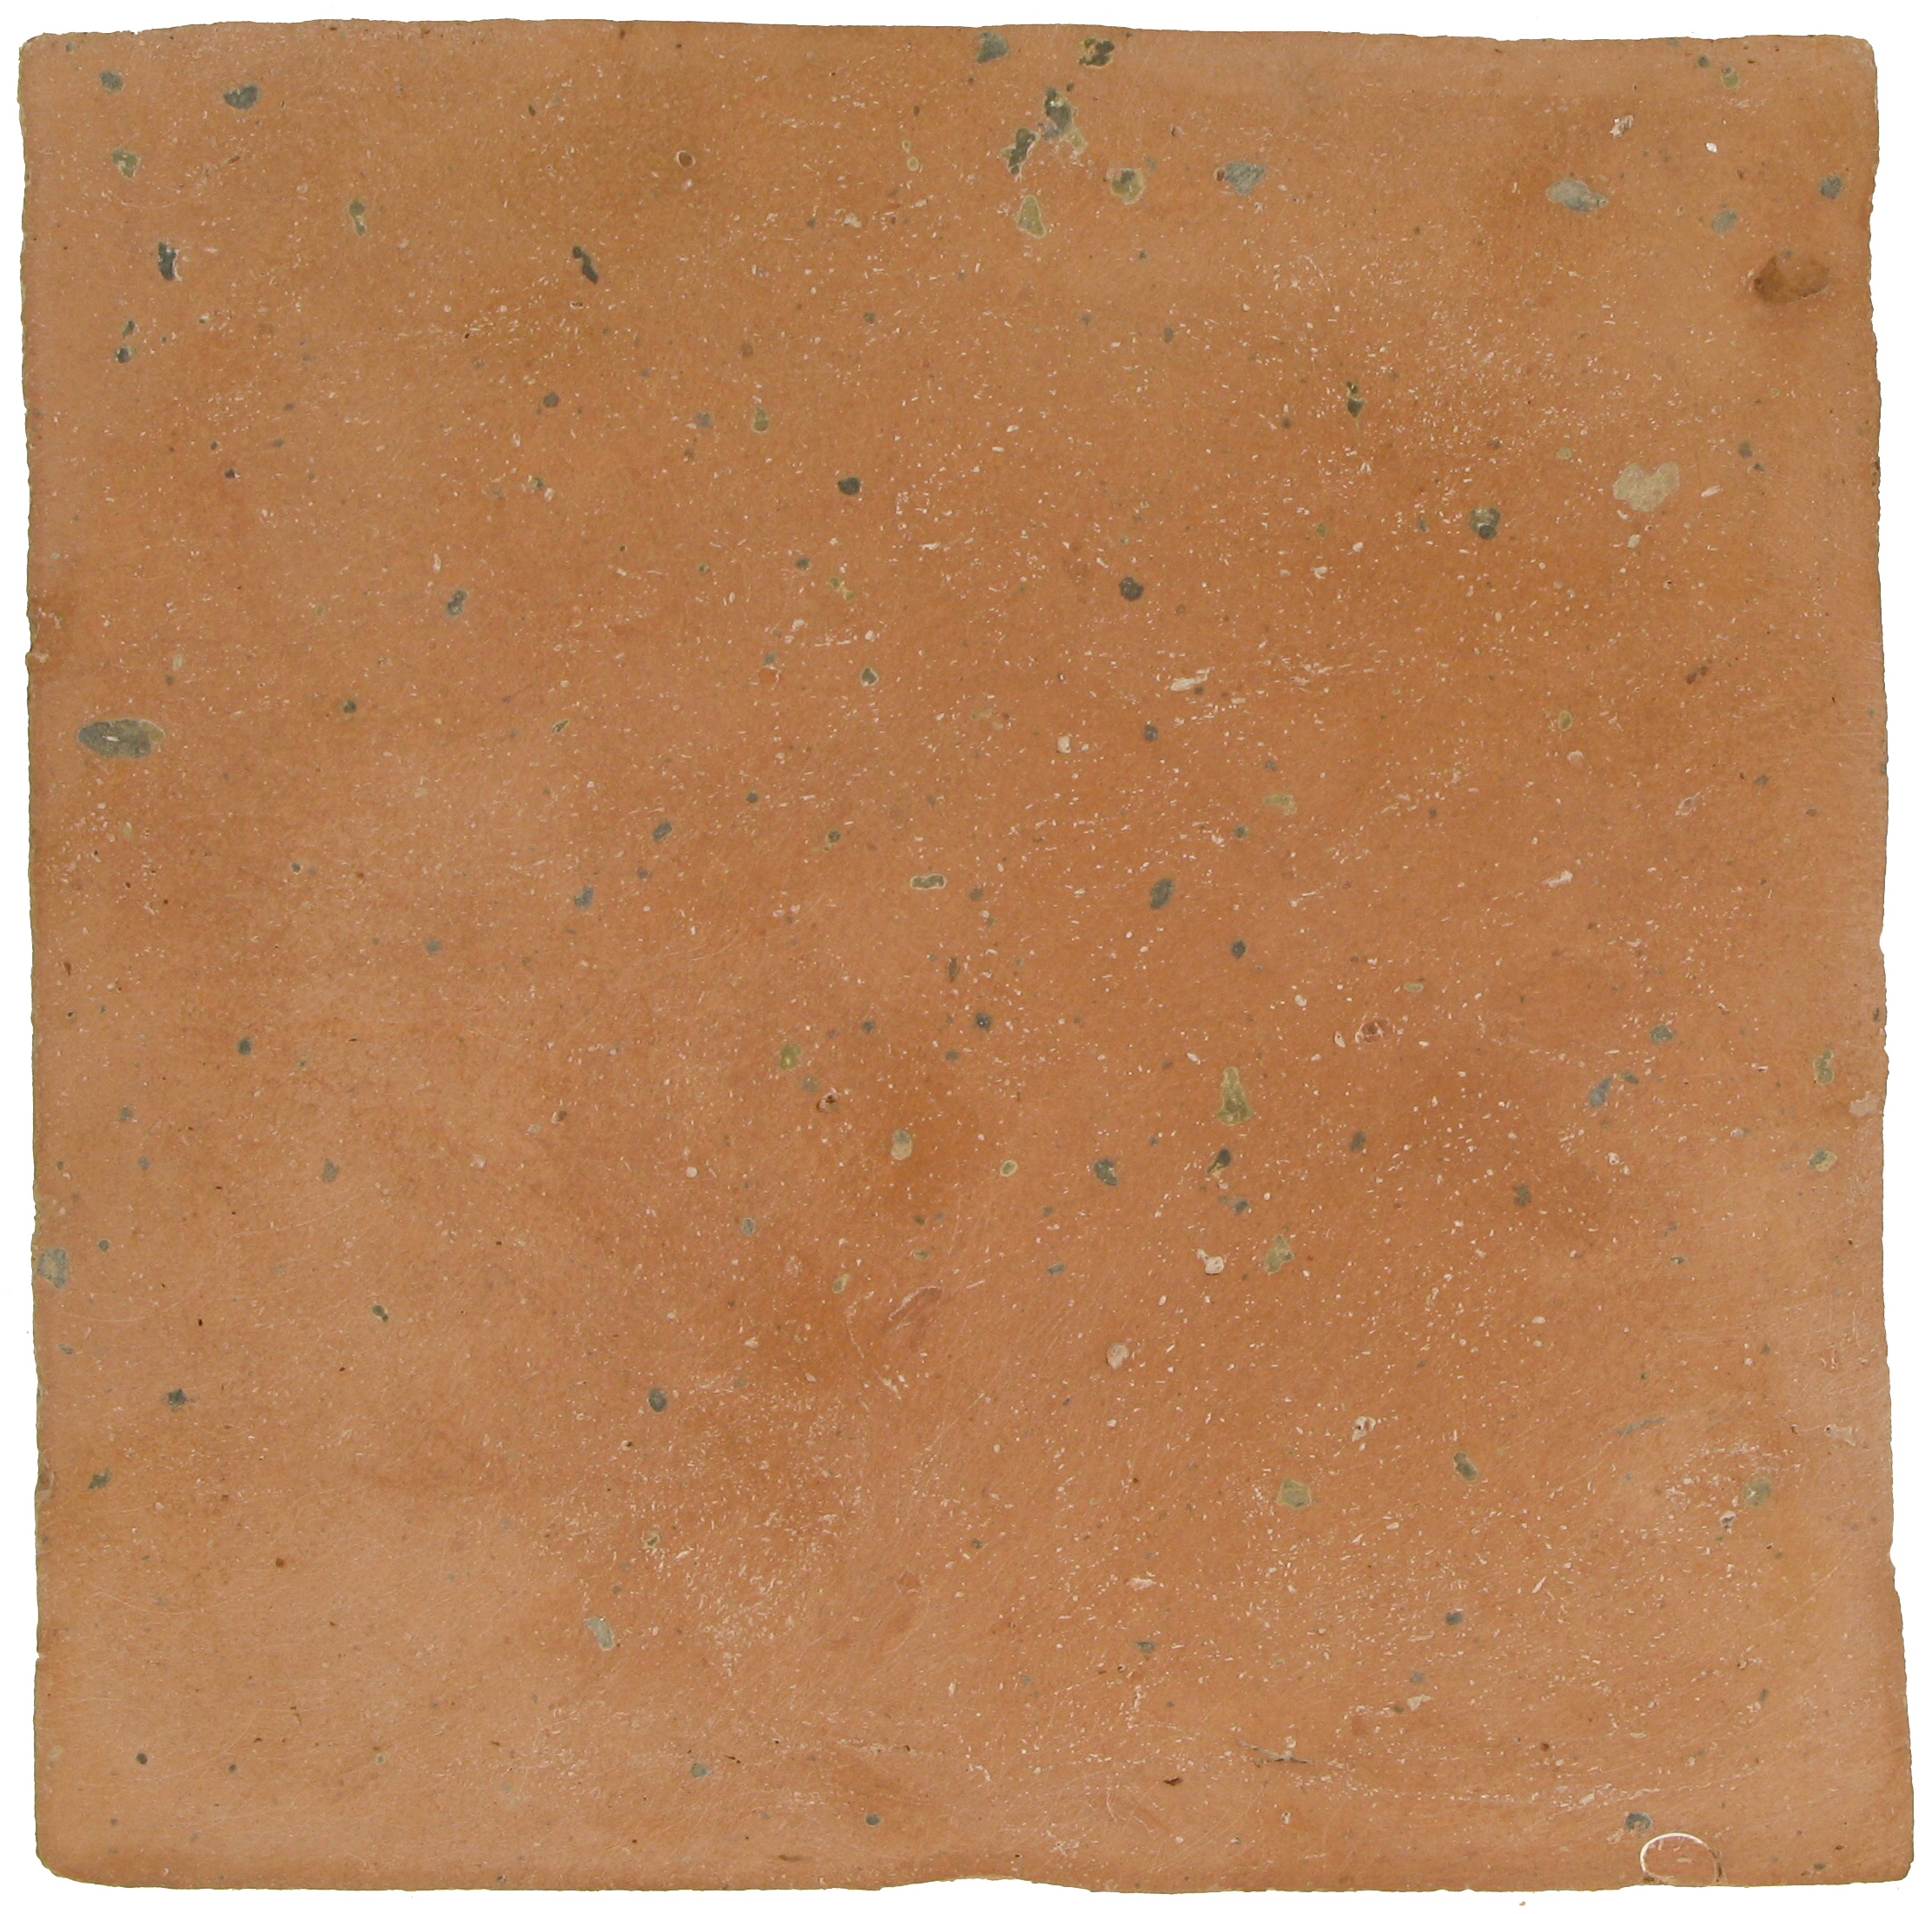 TOSCANA Terracotta & Marble  Terracotta: Cotto LUCCA  Color/Finish: Old Patina NATURAL(TCLN)